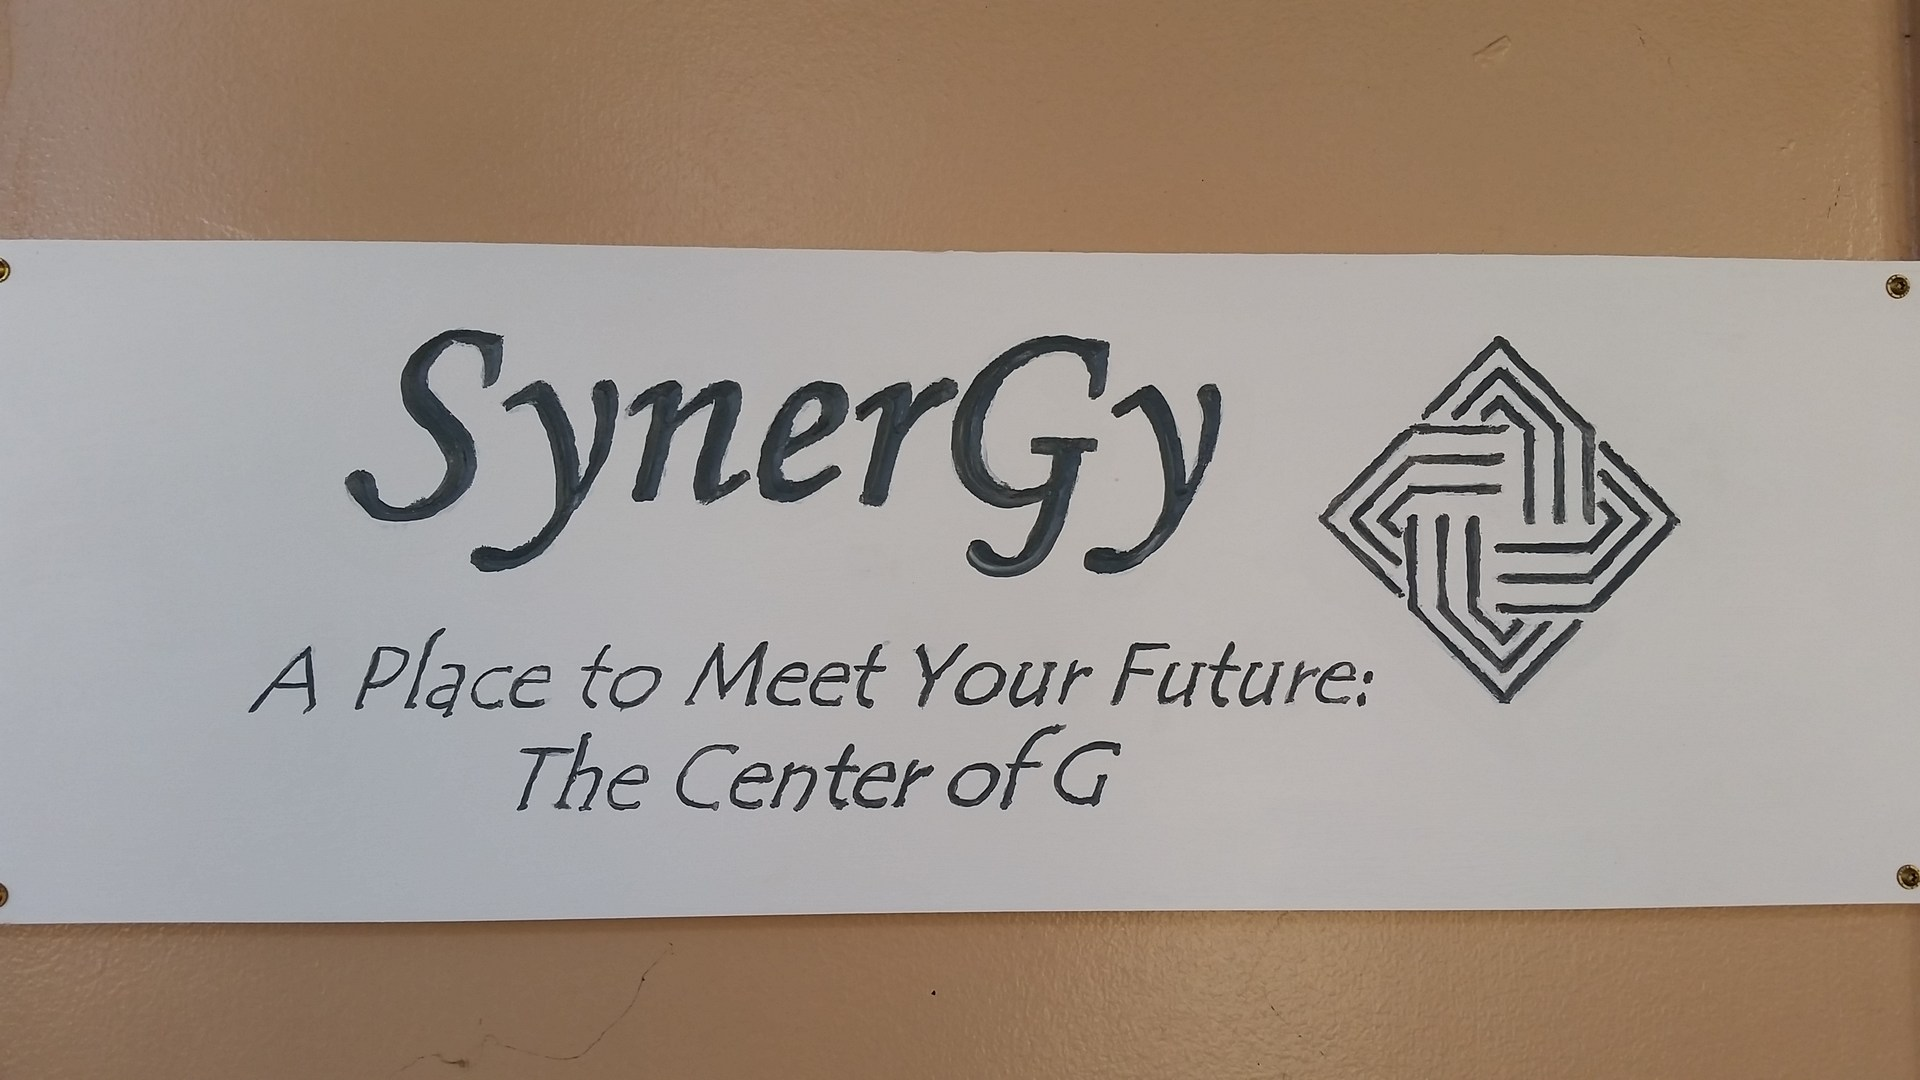 Here is the sign on G building which shows you where SynerGy is located.